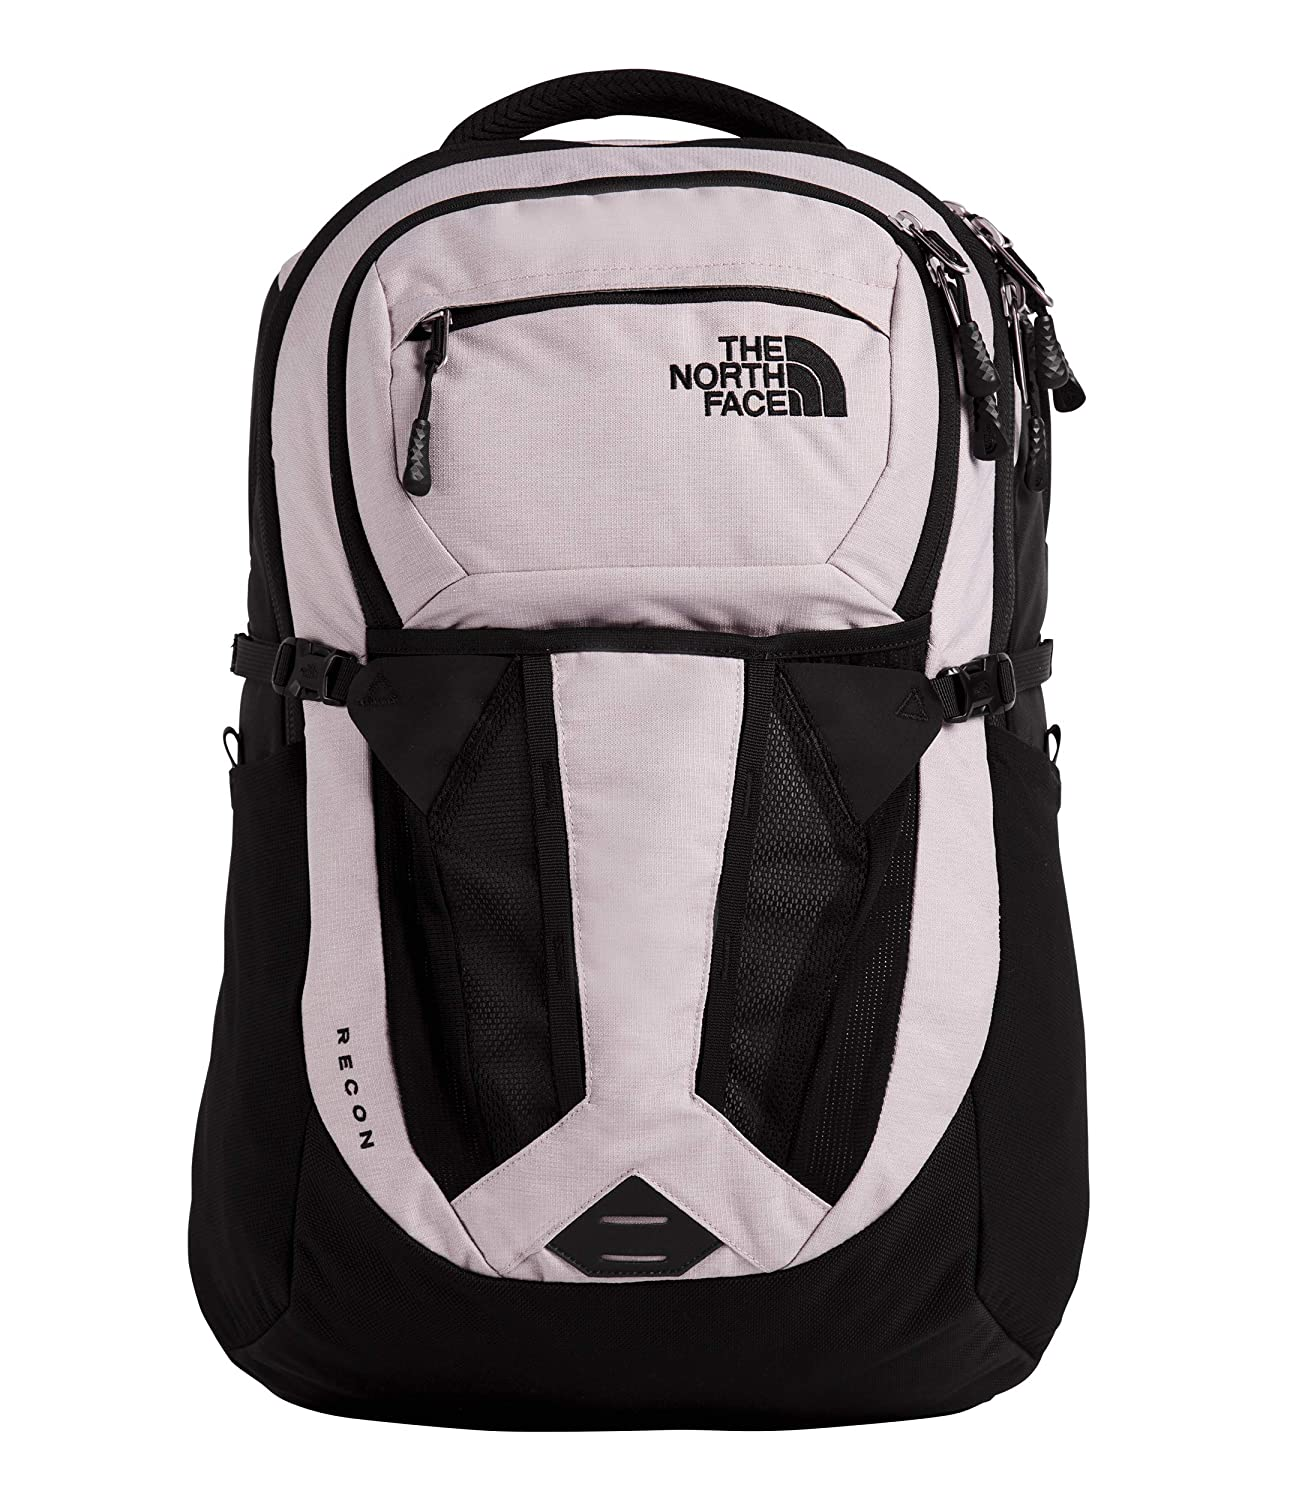 5d50edc98 The North Face Women's Recon Backpack